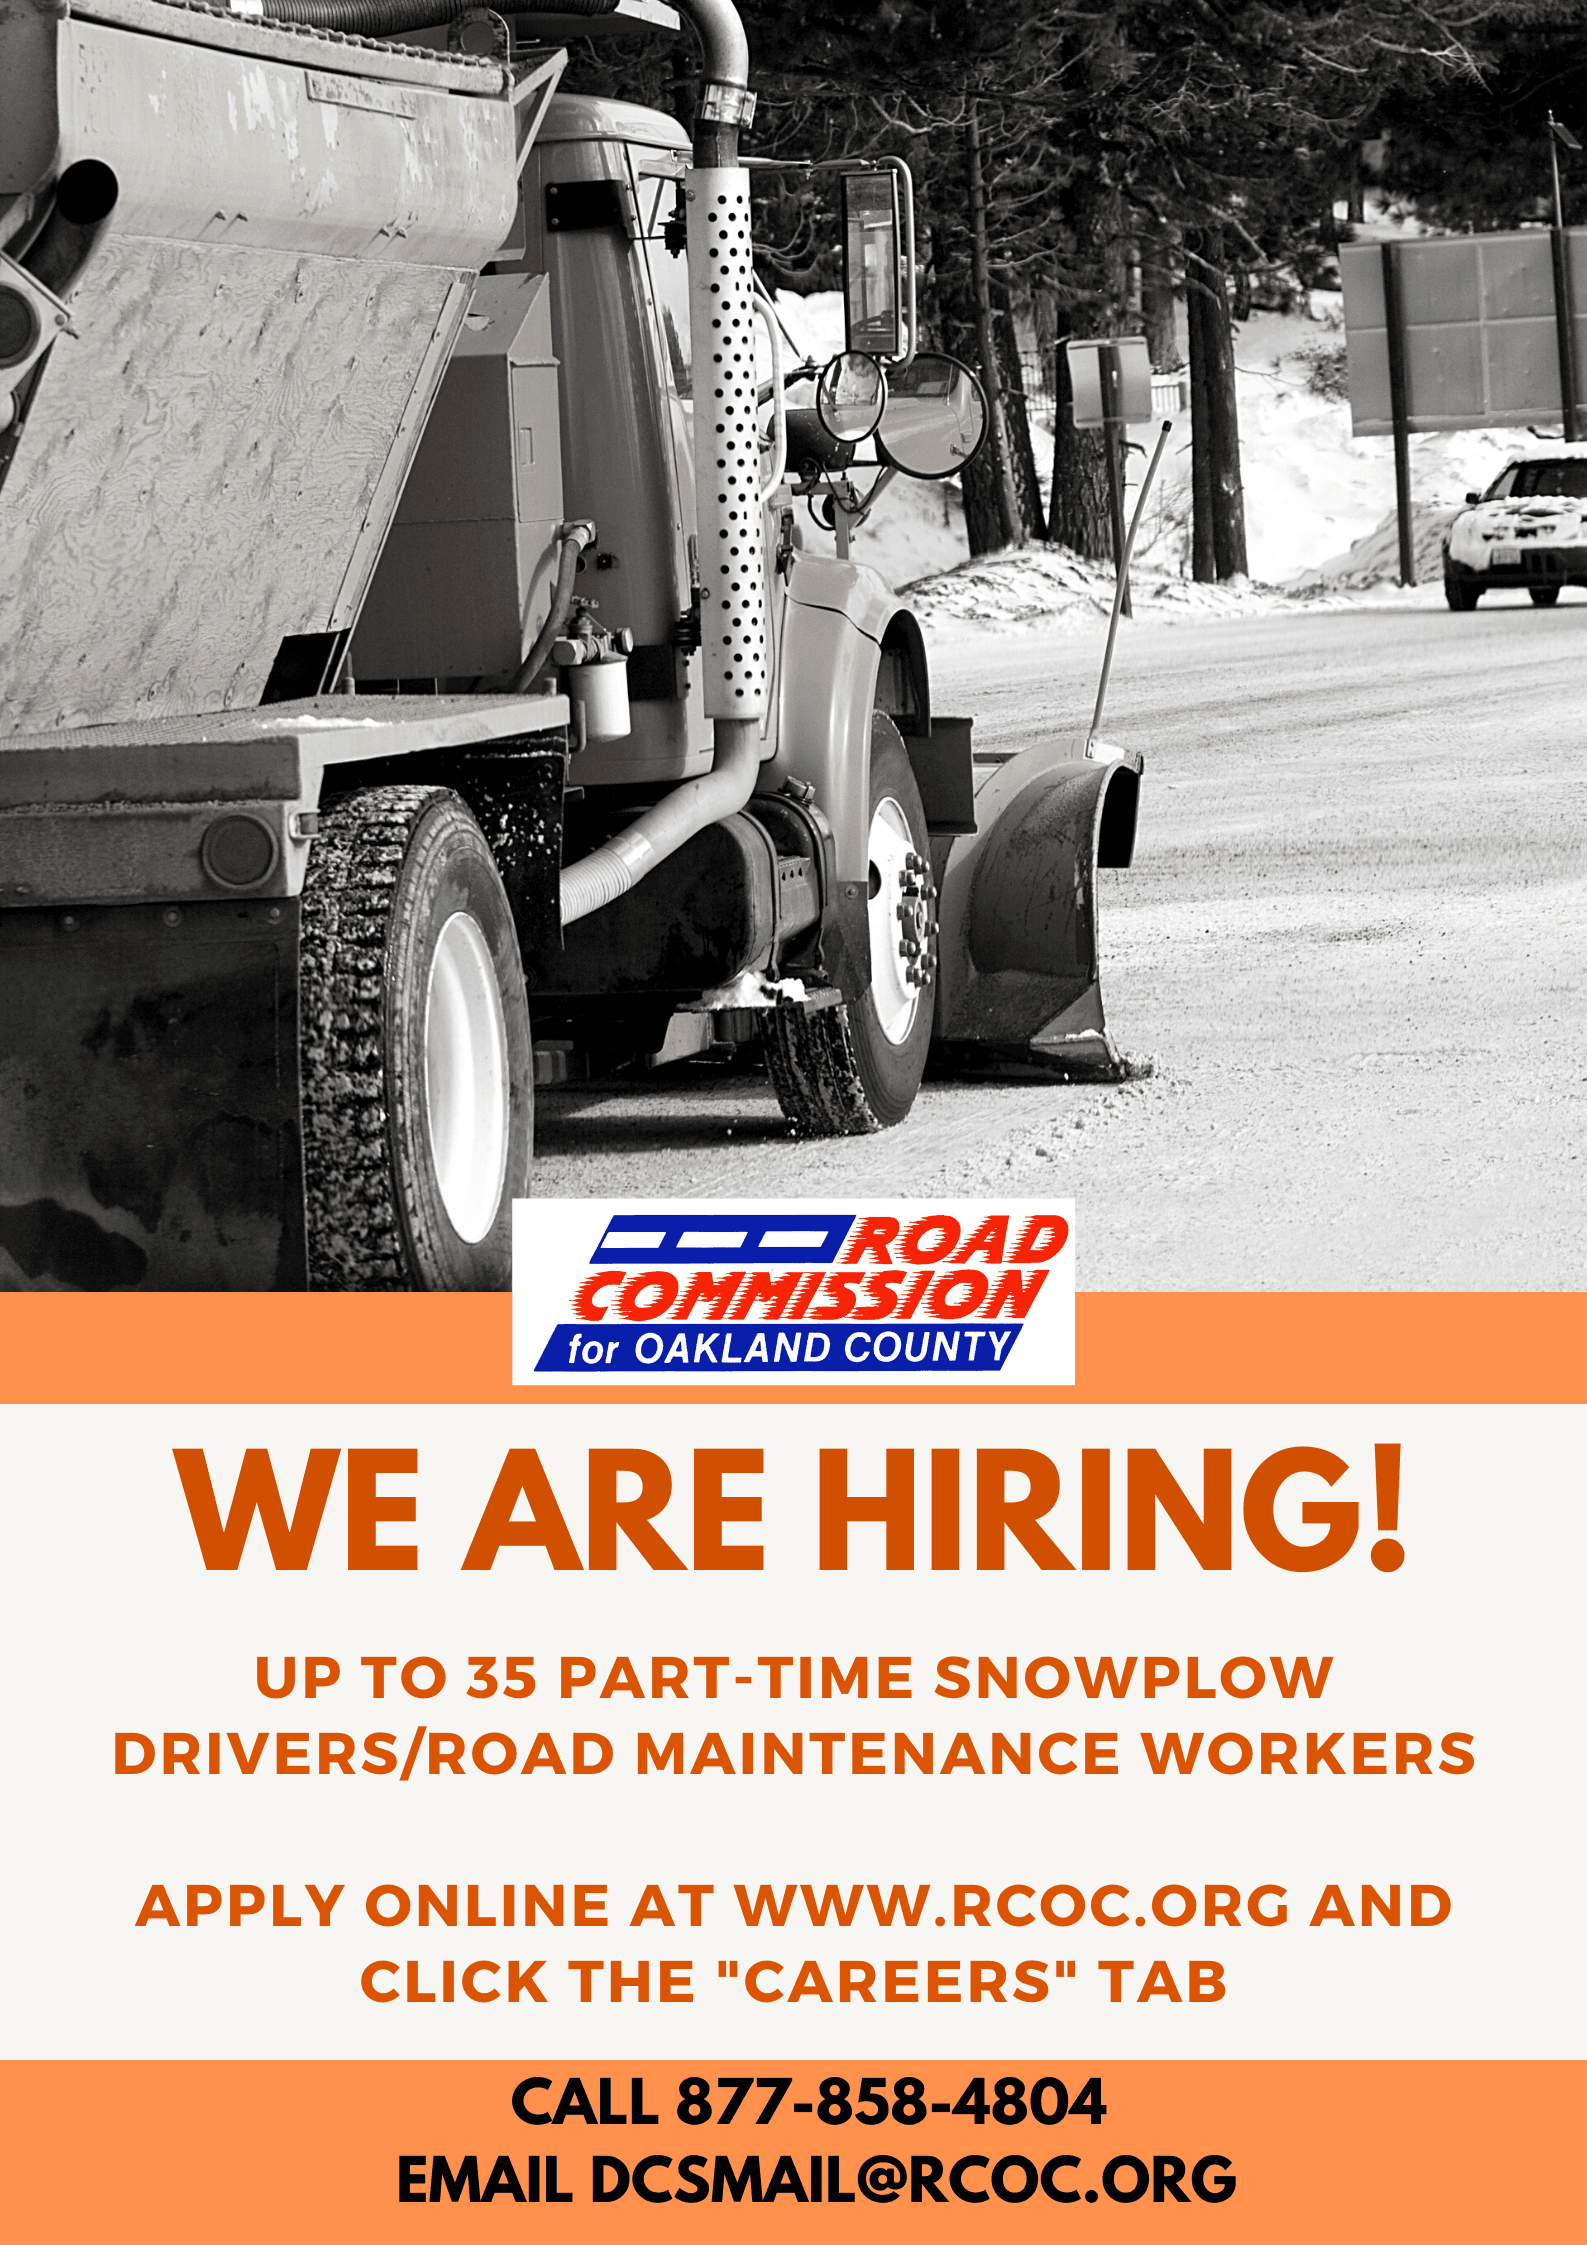 RCOC hiring part-time snowplow drivers/maintenance workers image